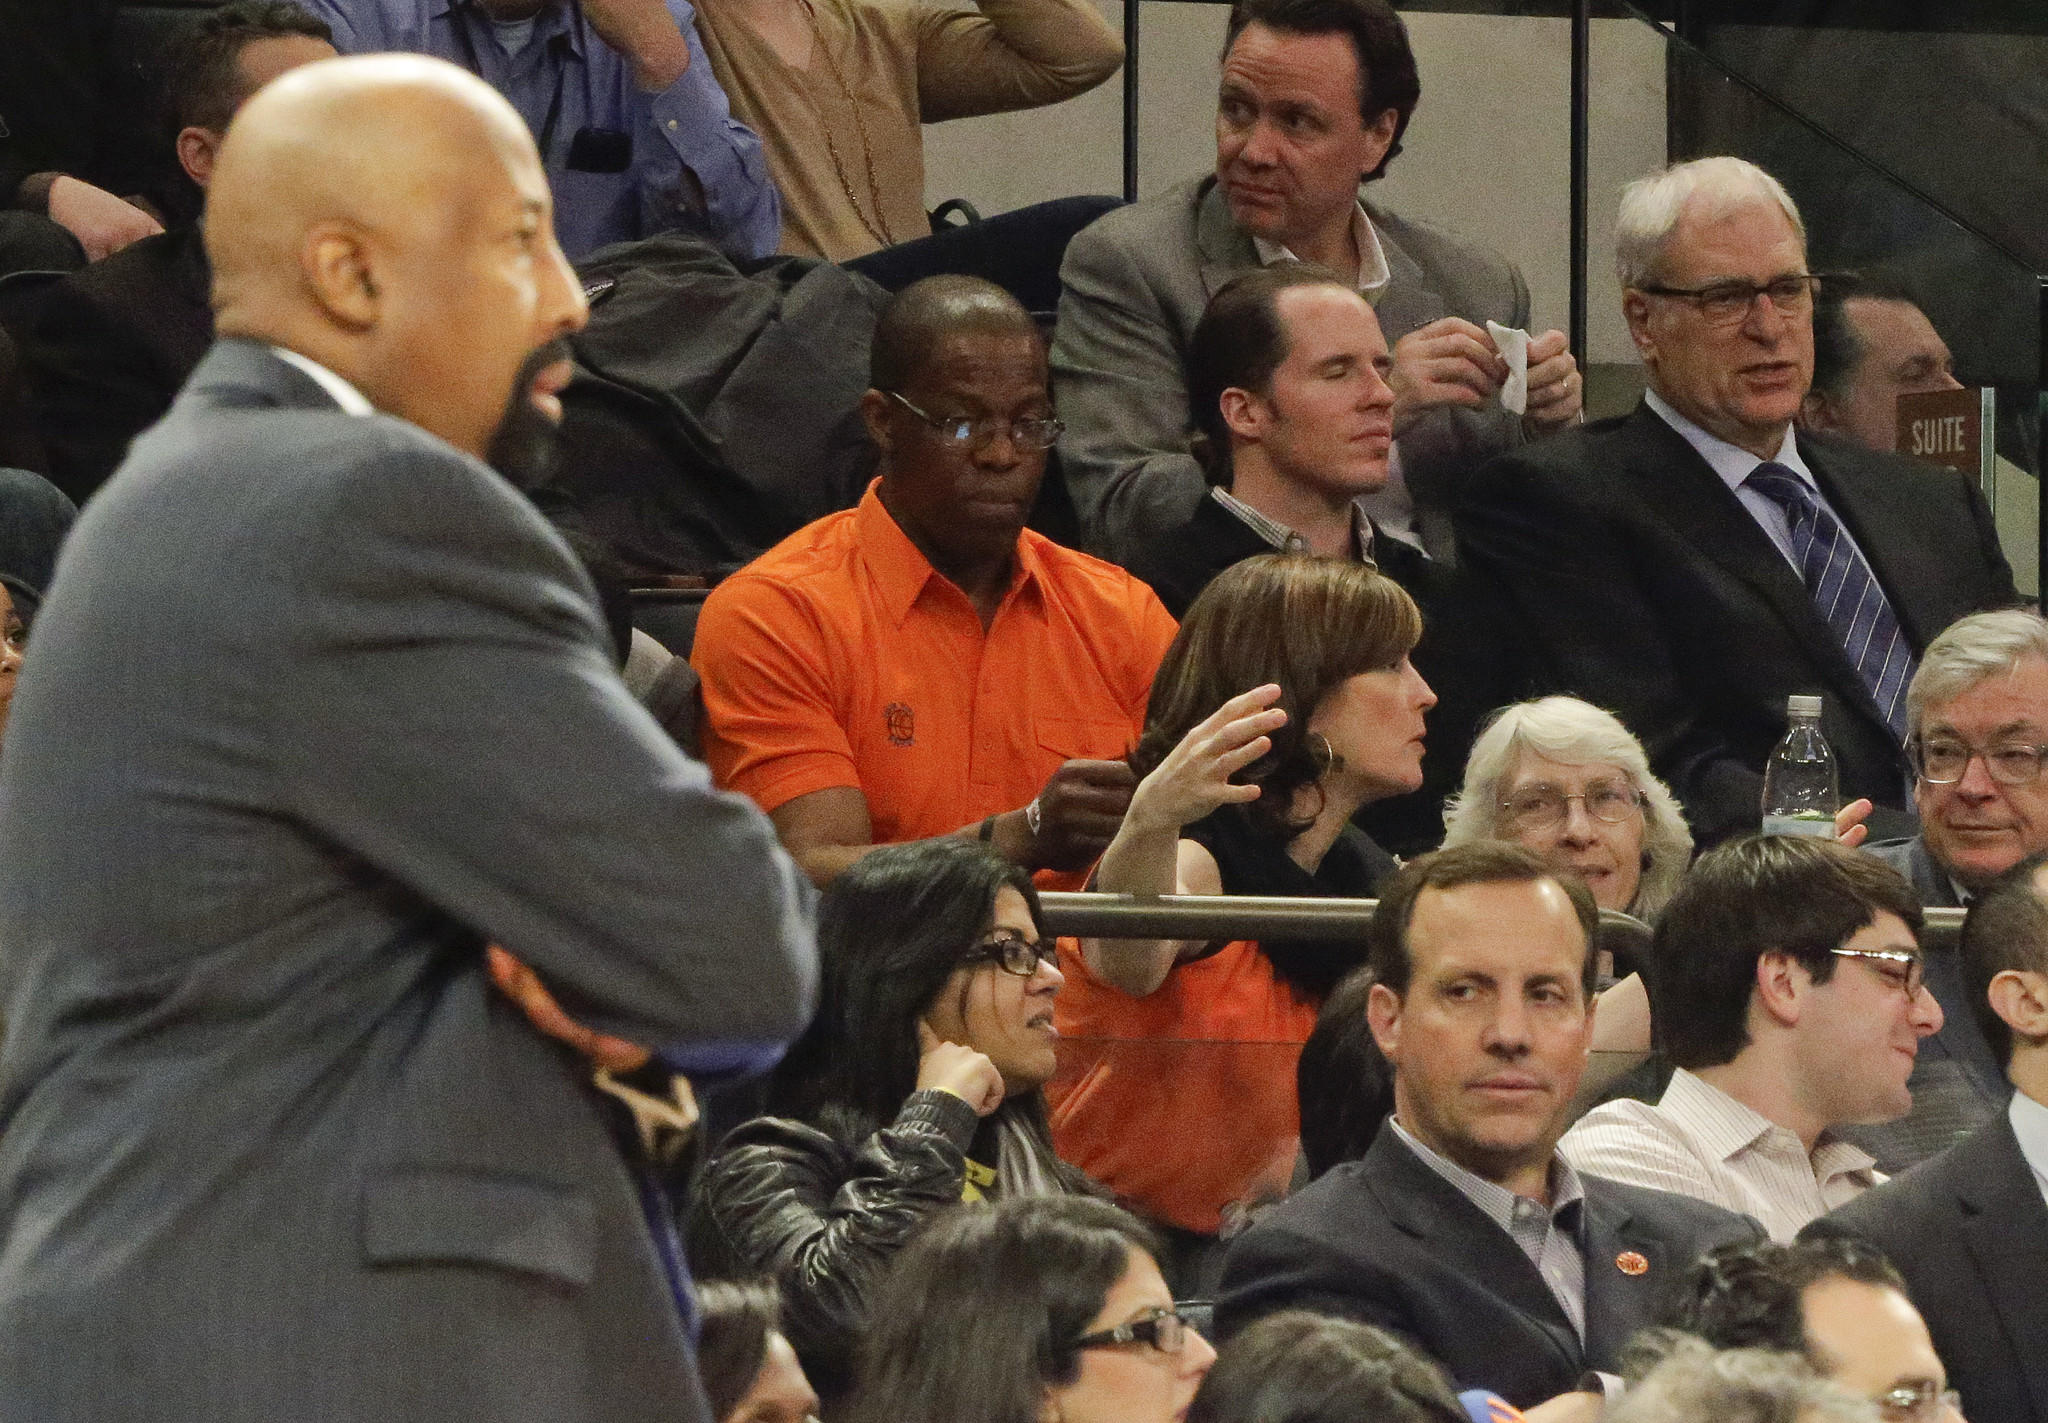 New York Knicks President Phil Jackson, far right, and then-coach Mike Woodson, far left, watch their team play the Wizards.